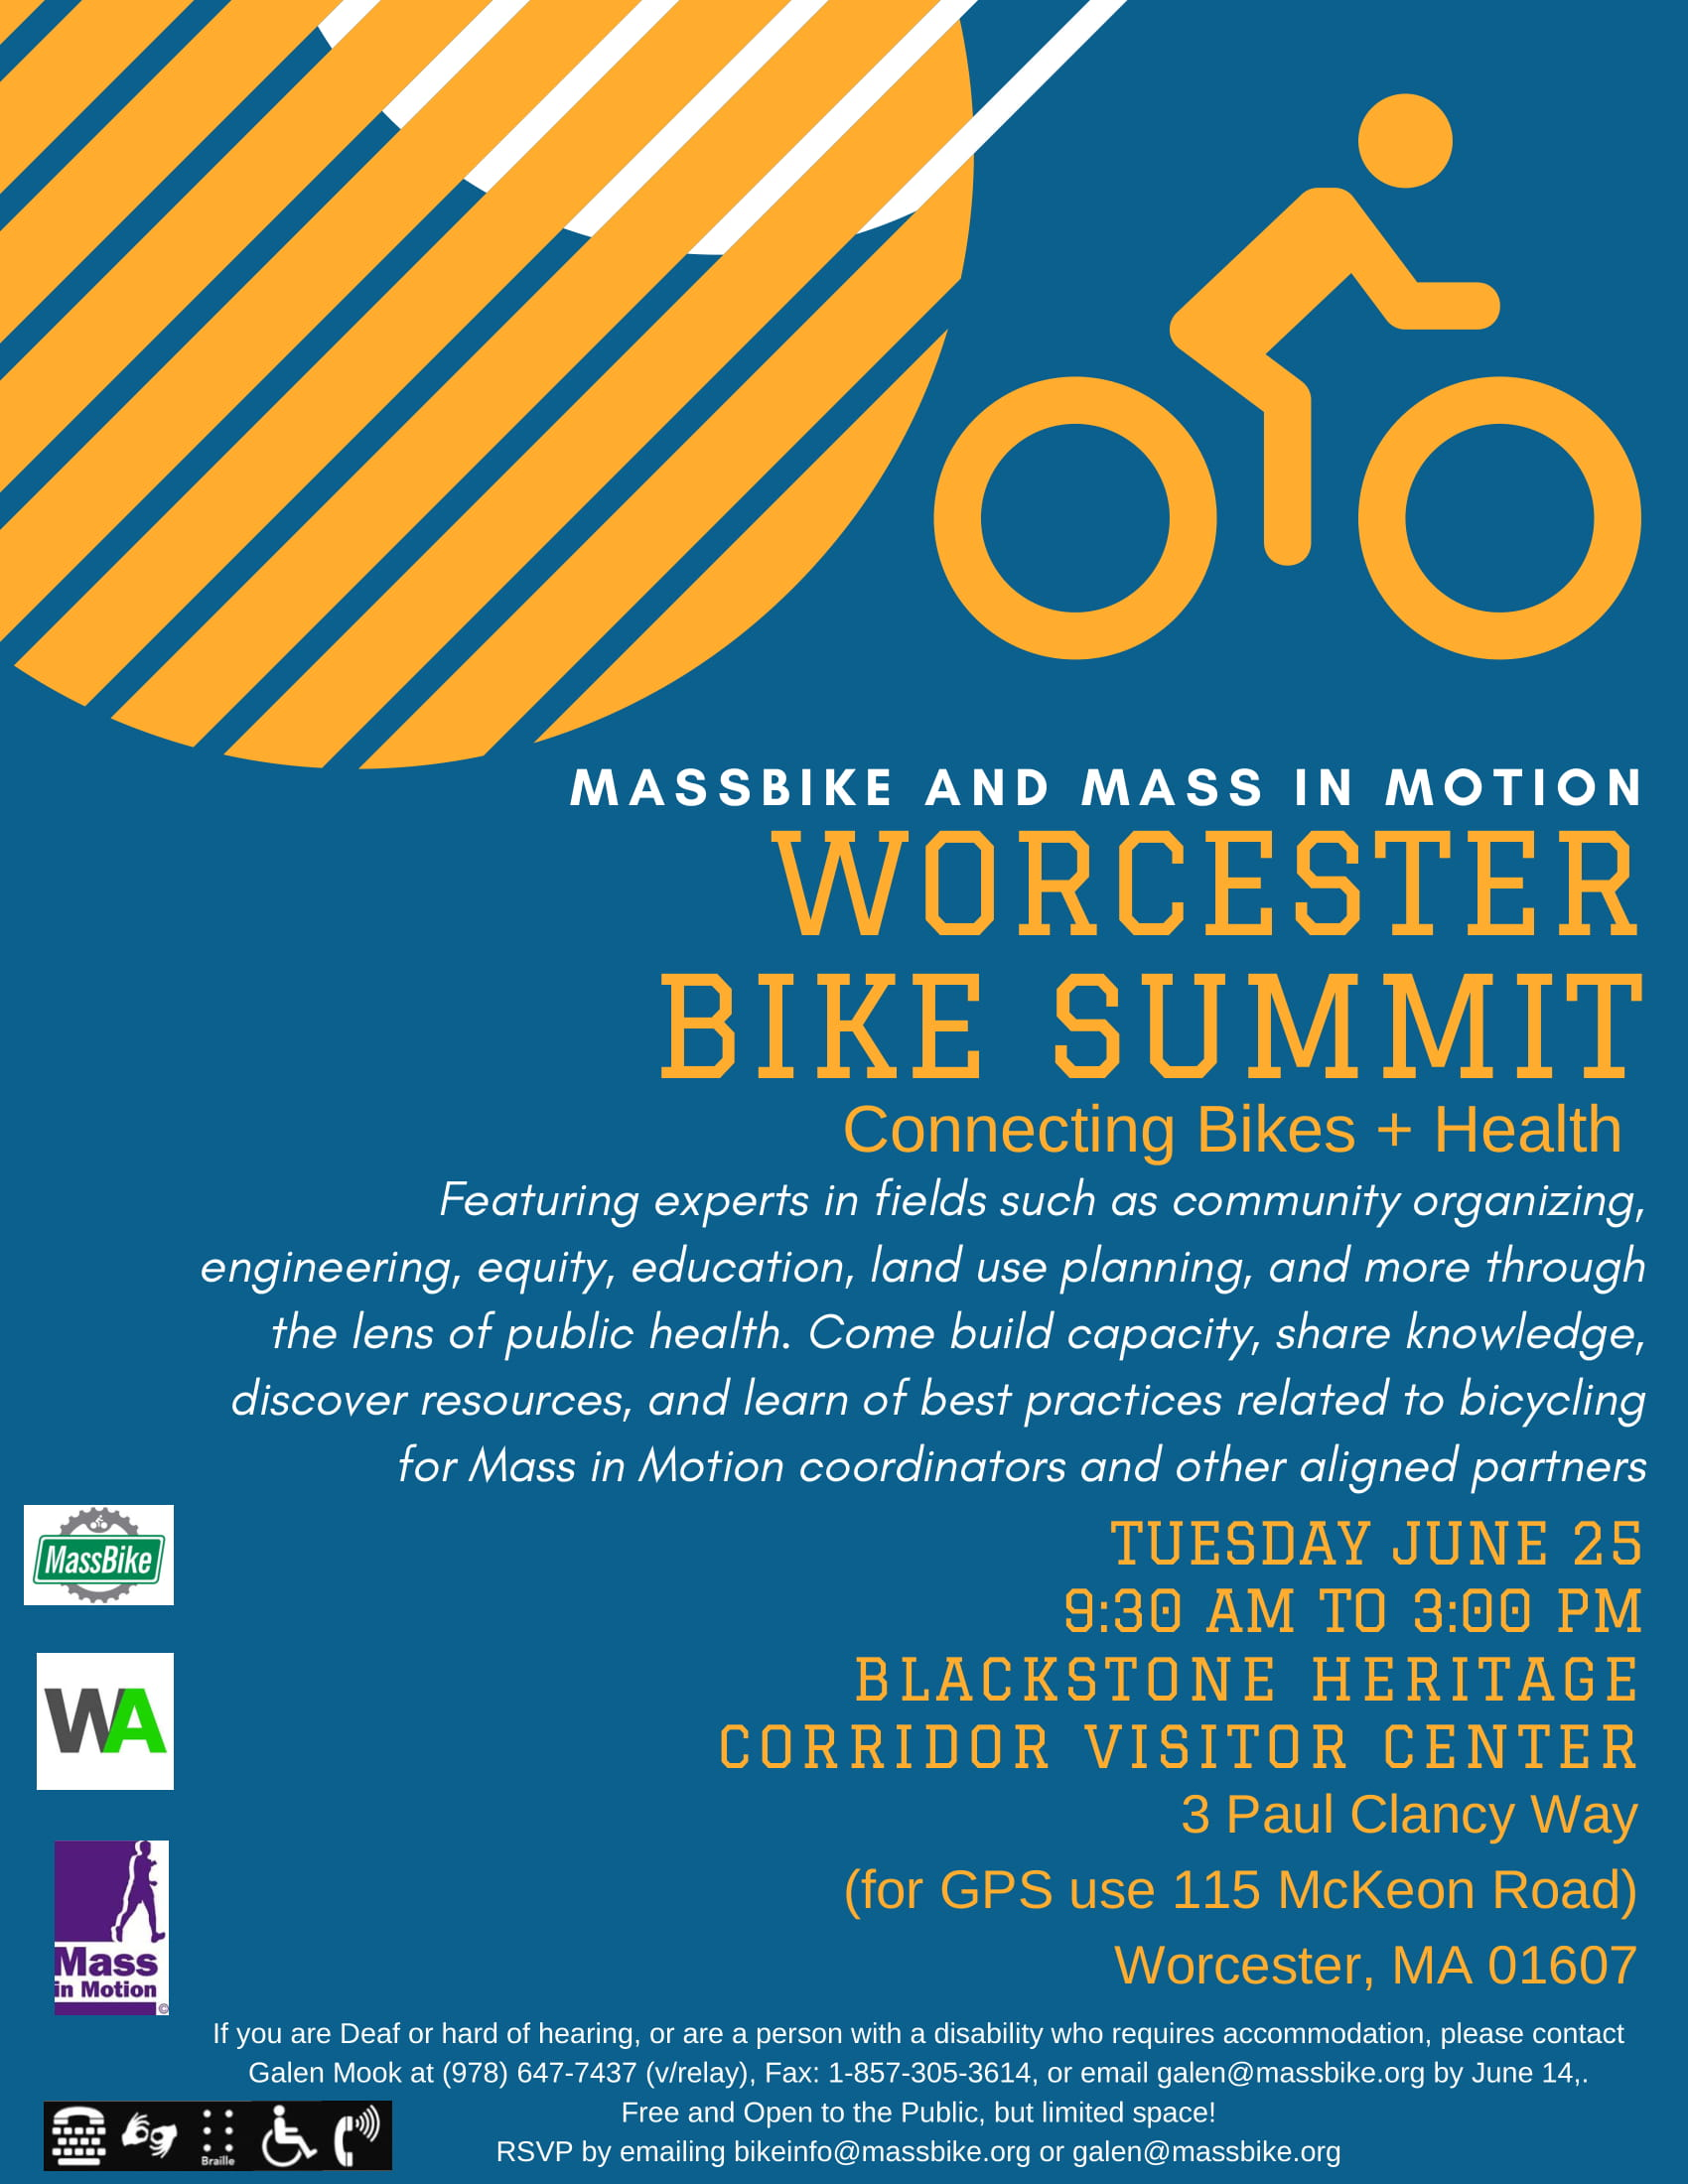 Worcester_Bike_Summit_Flyer-1.jpg